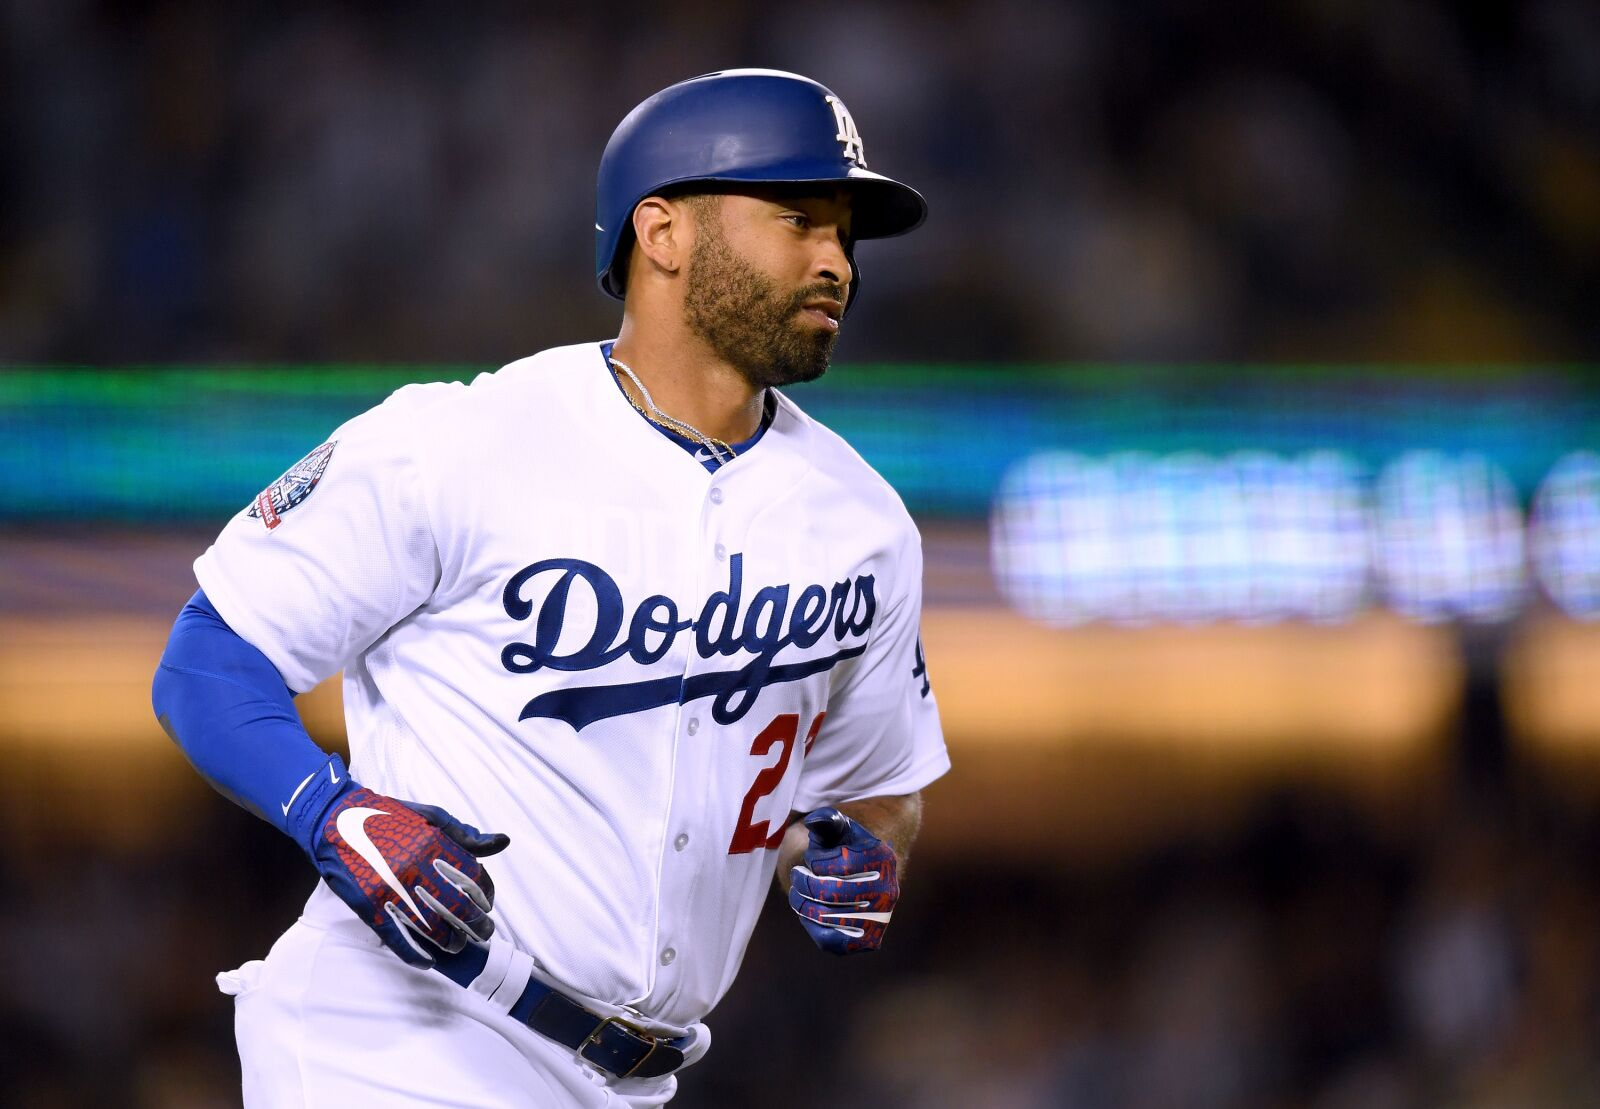 Los Angeles Dodgers Keeping The Momentum Rolling Against